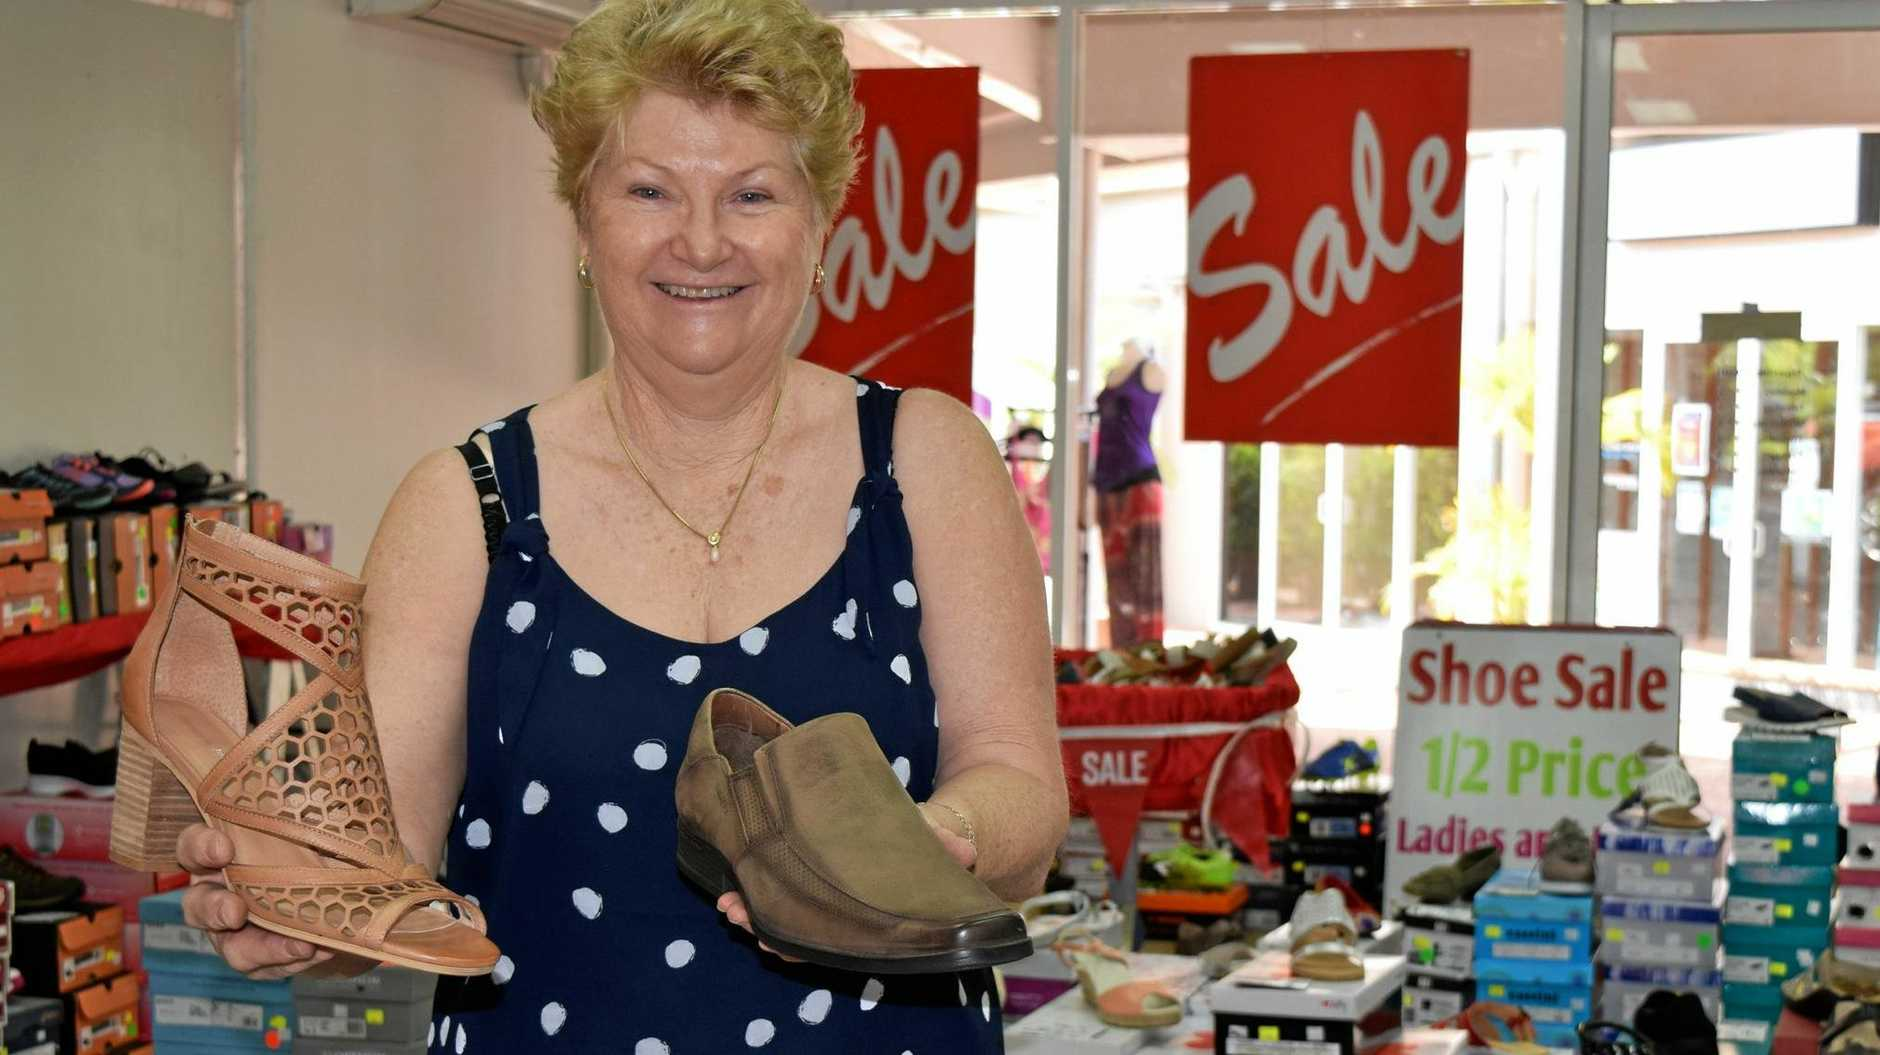 GRAB A BARGAIN: Pam Allison shows off some of the shoes on offer at the pop-up clearance shop in Cannonvale.